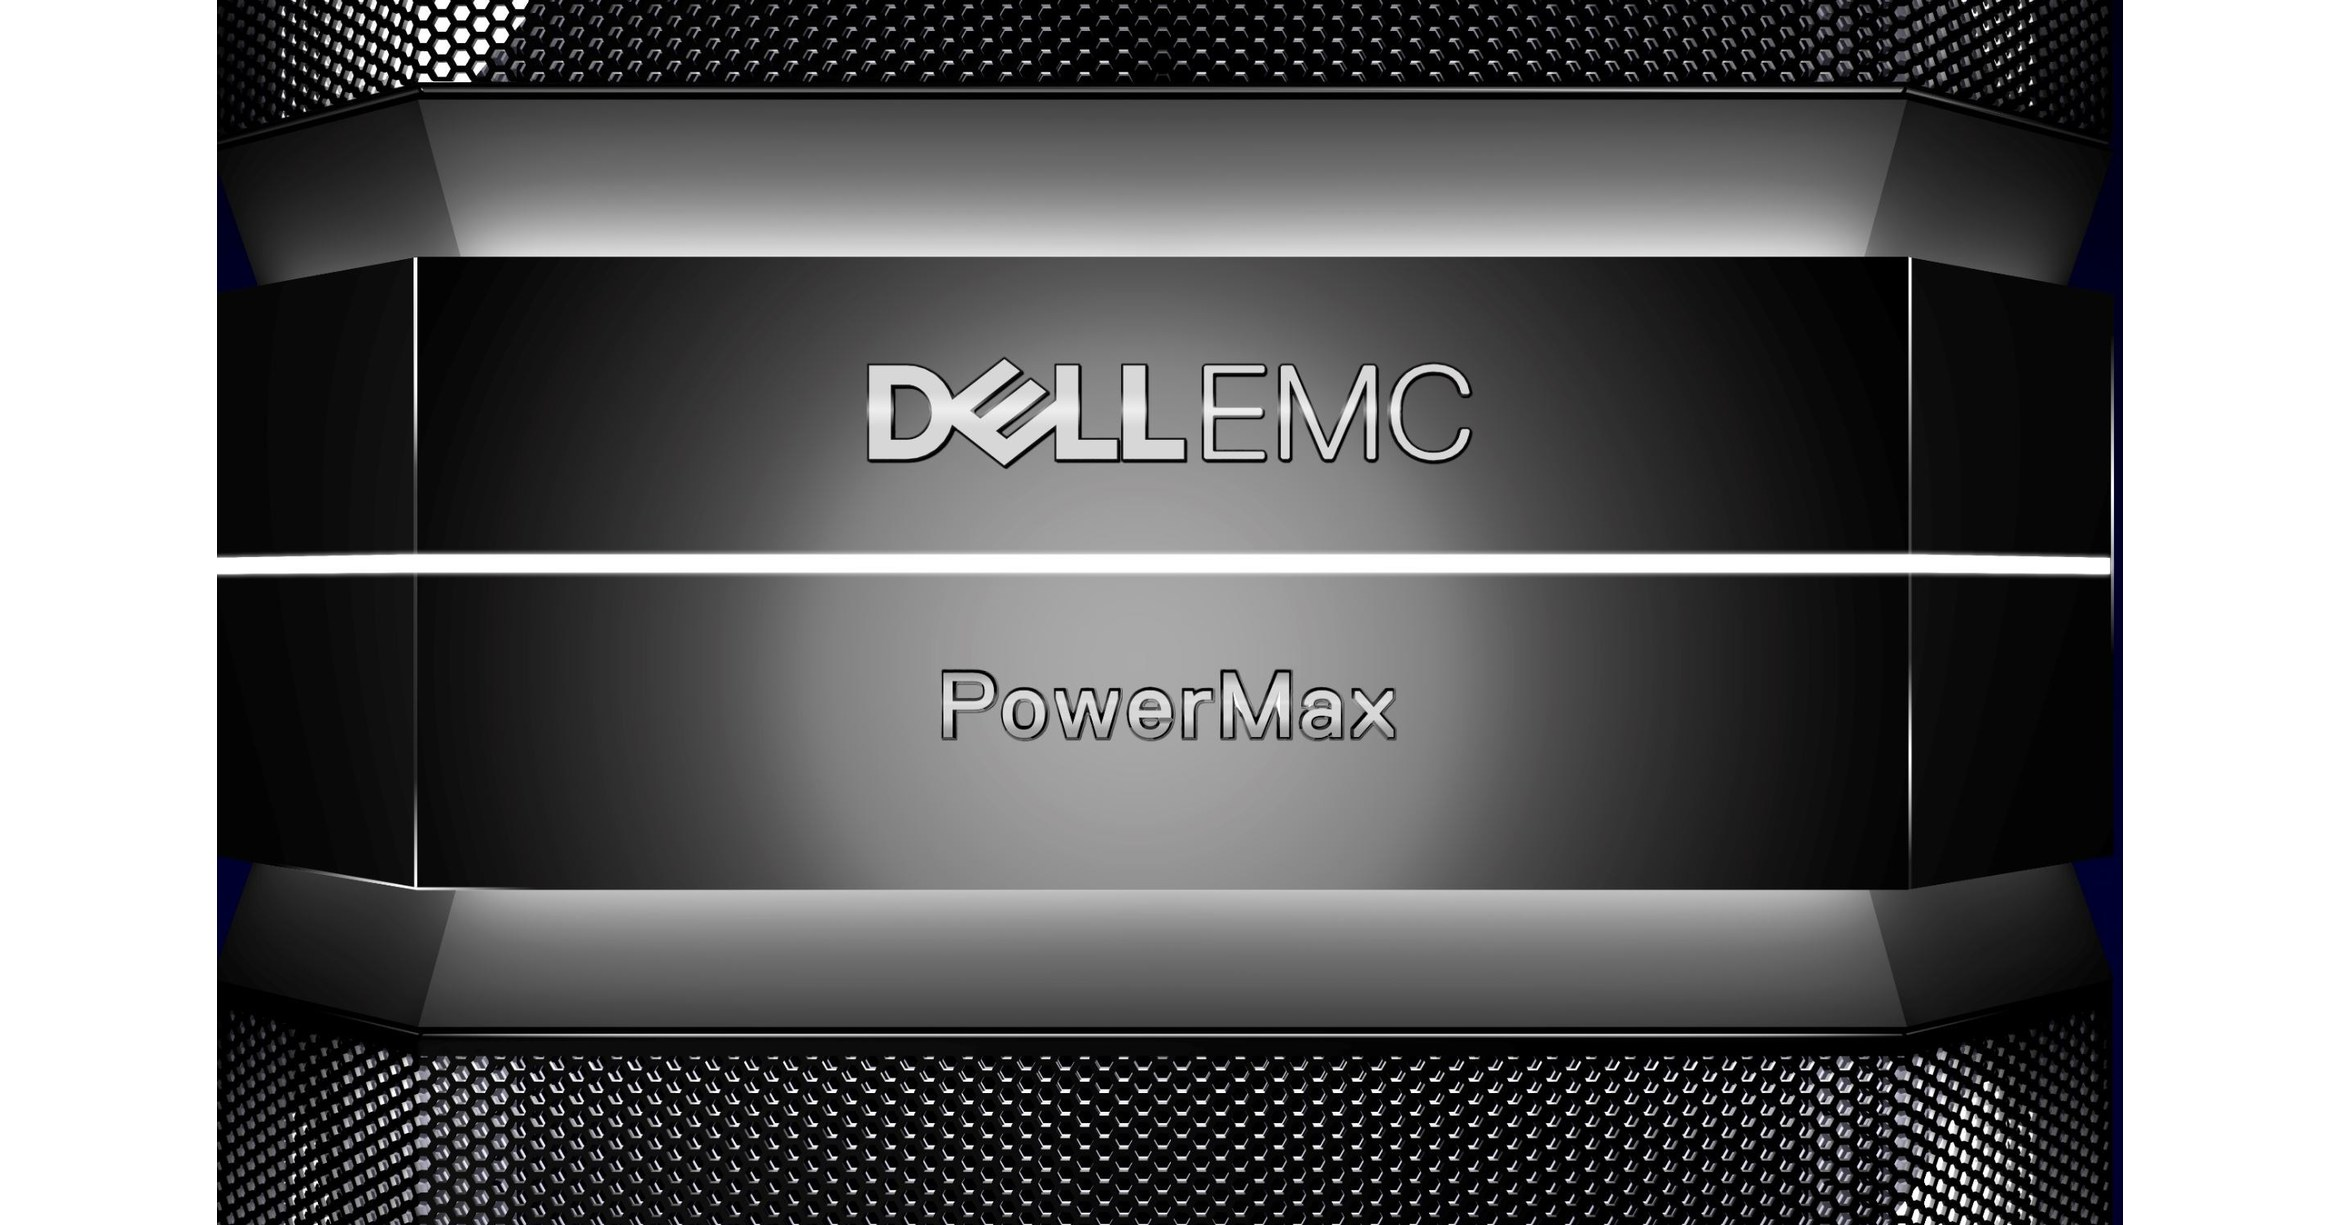 Dell Technologies Delivers Industry-First Storage Innovation